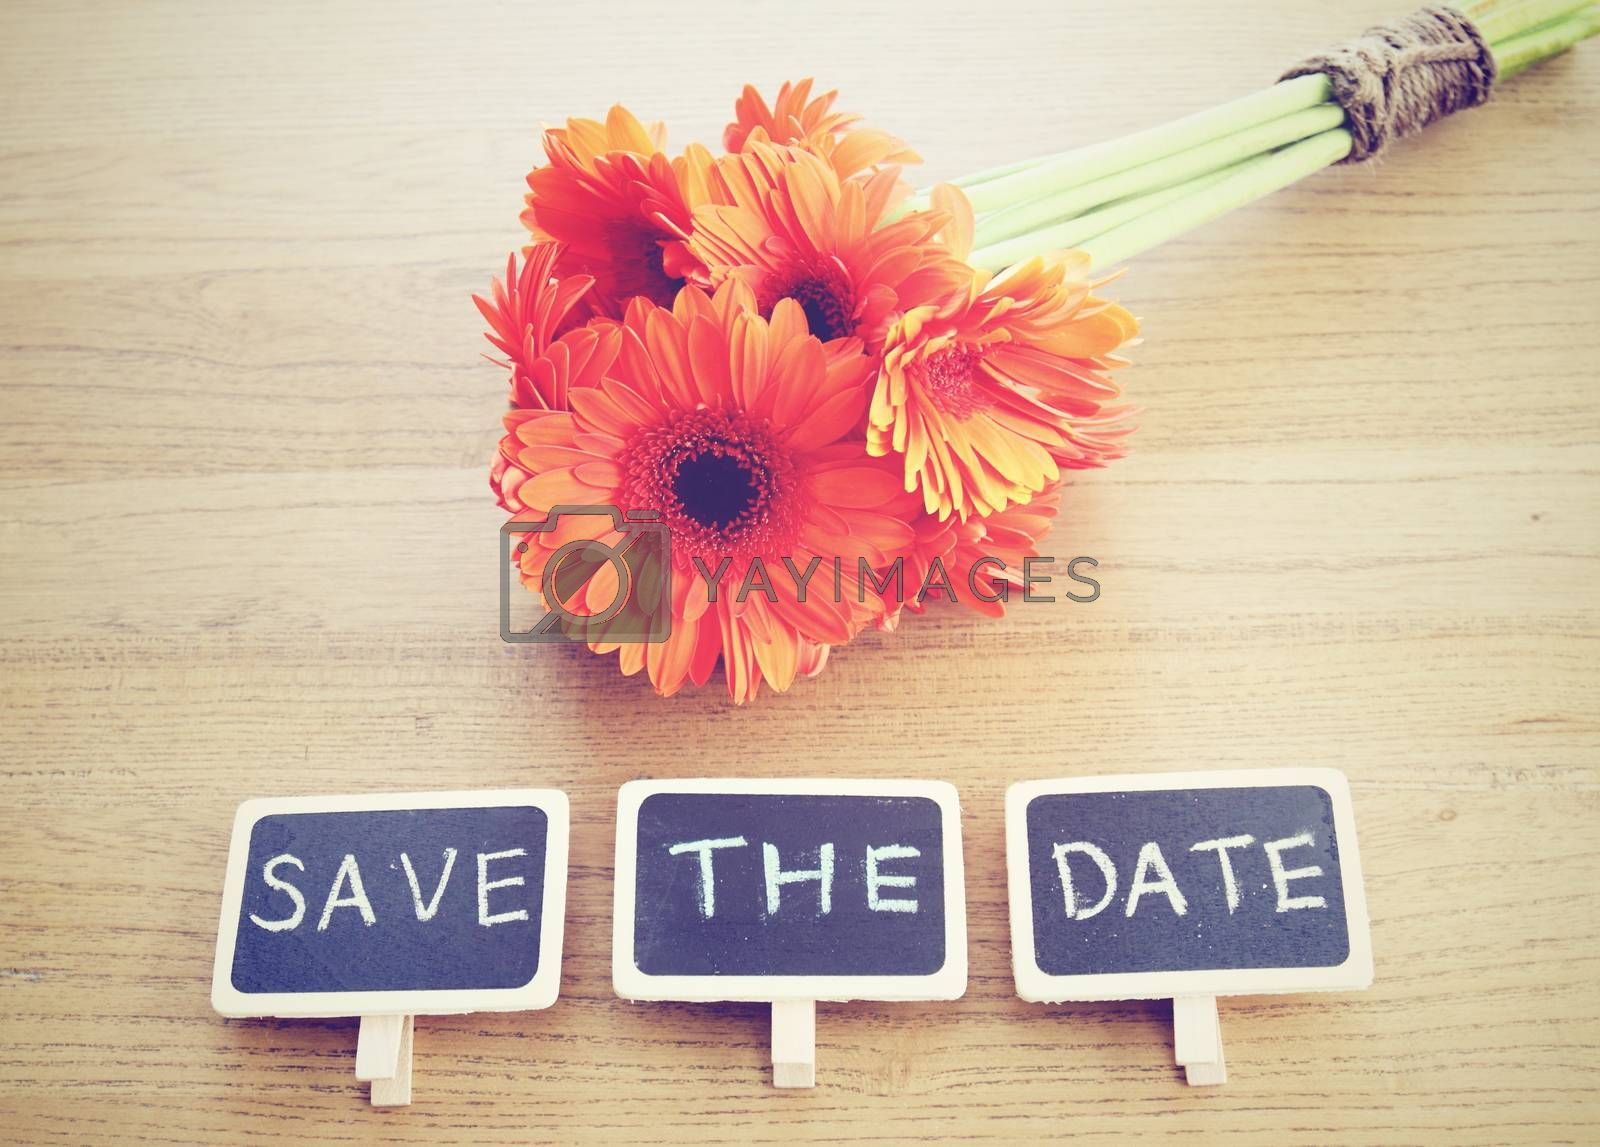 Save the date written on blackboard with flower, retro filter effect